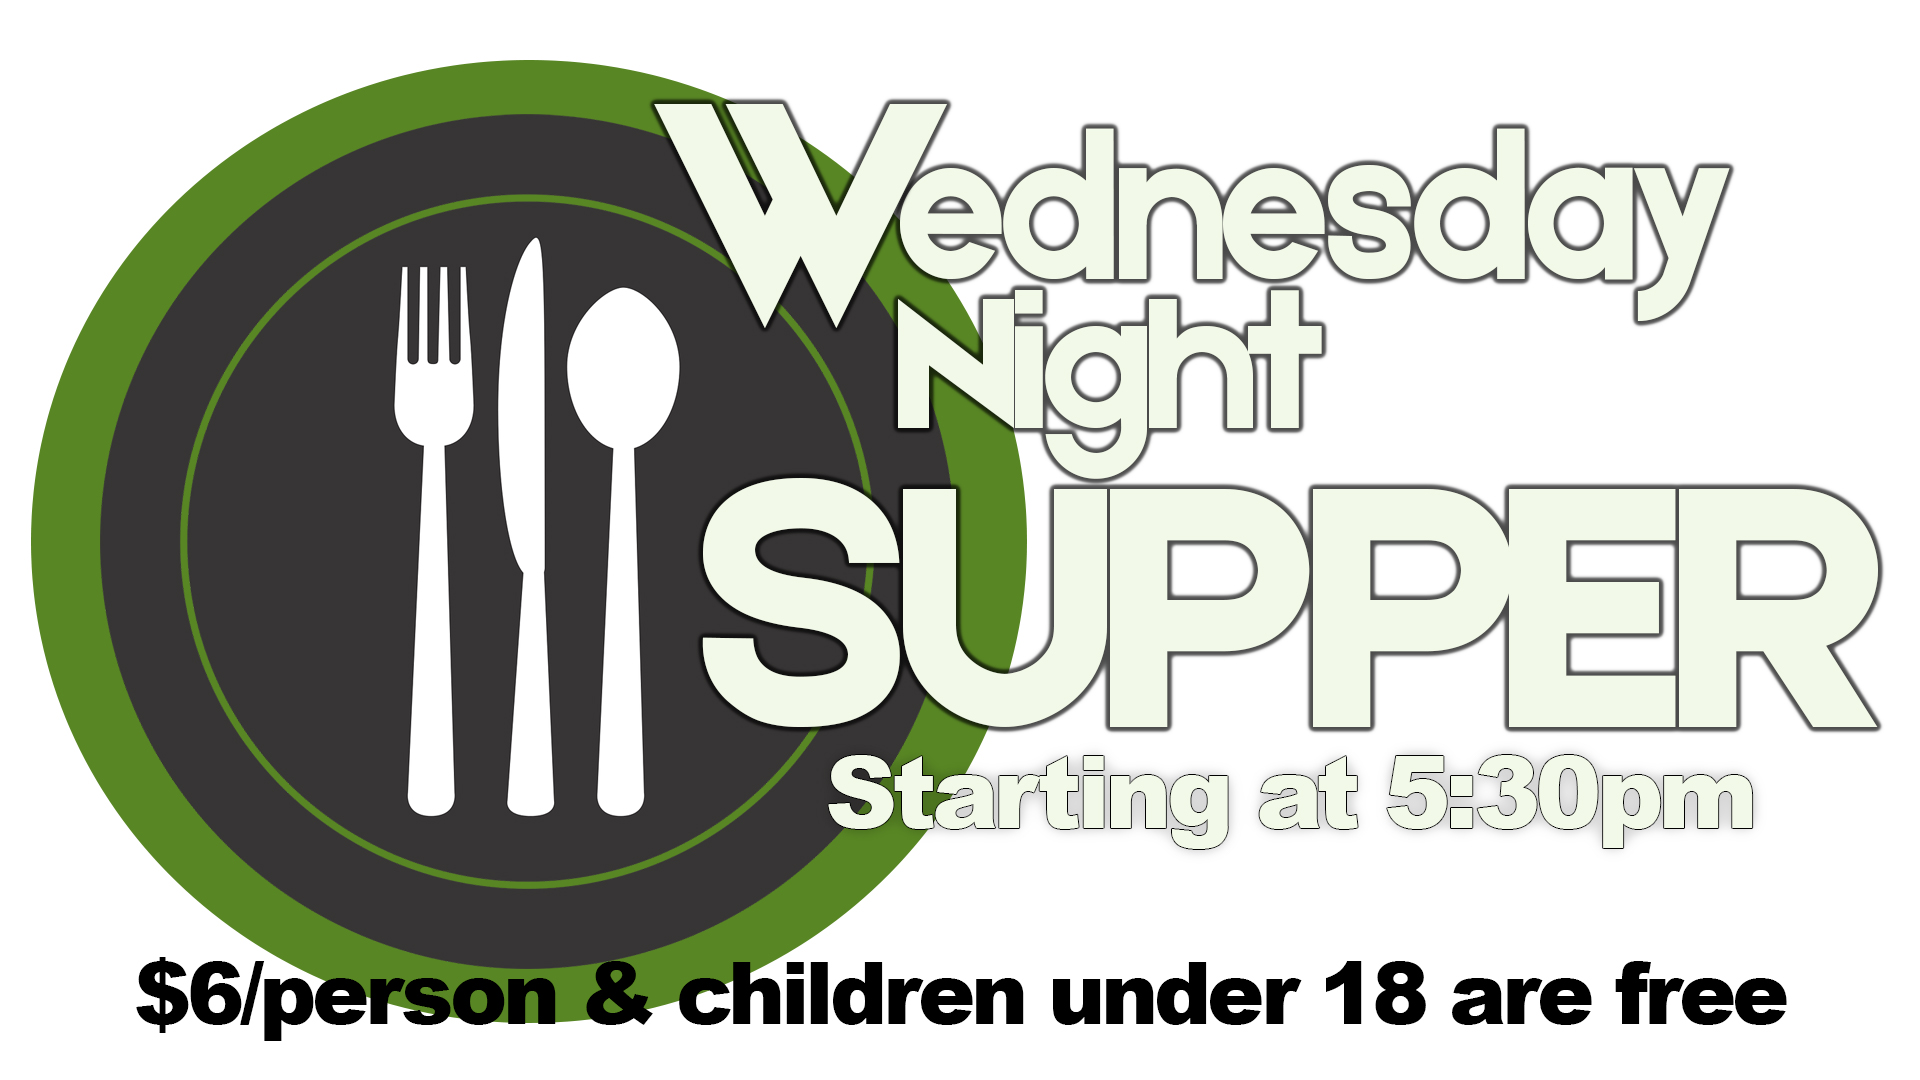 Wednesday Night Supper General Announcement.jpg